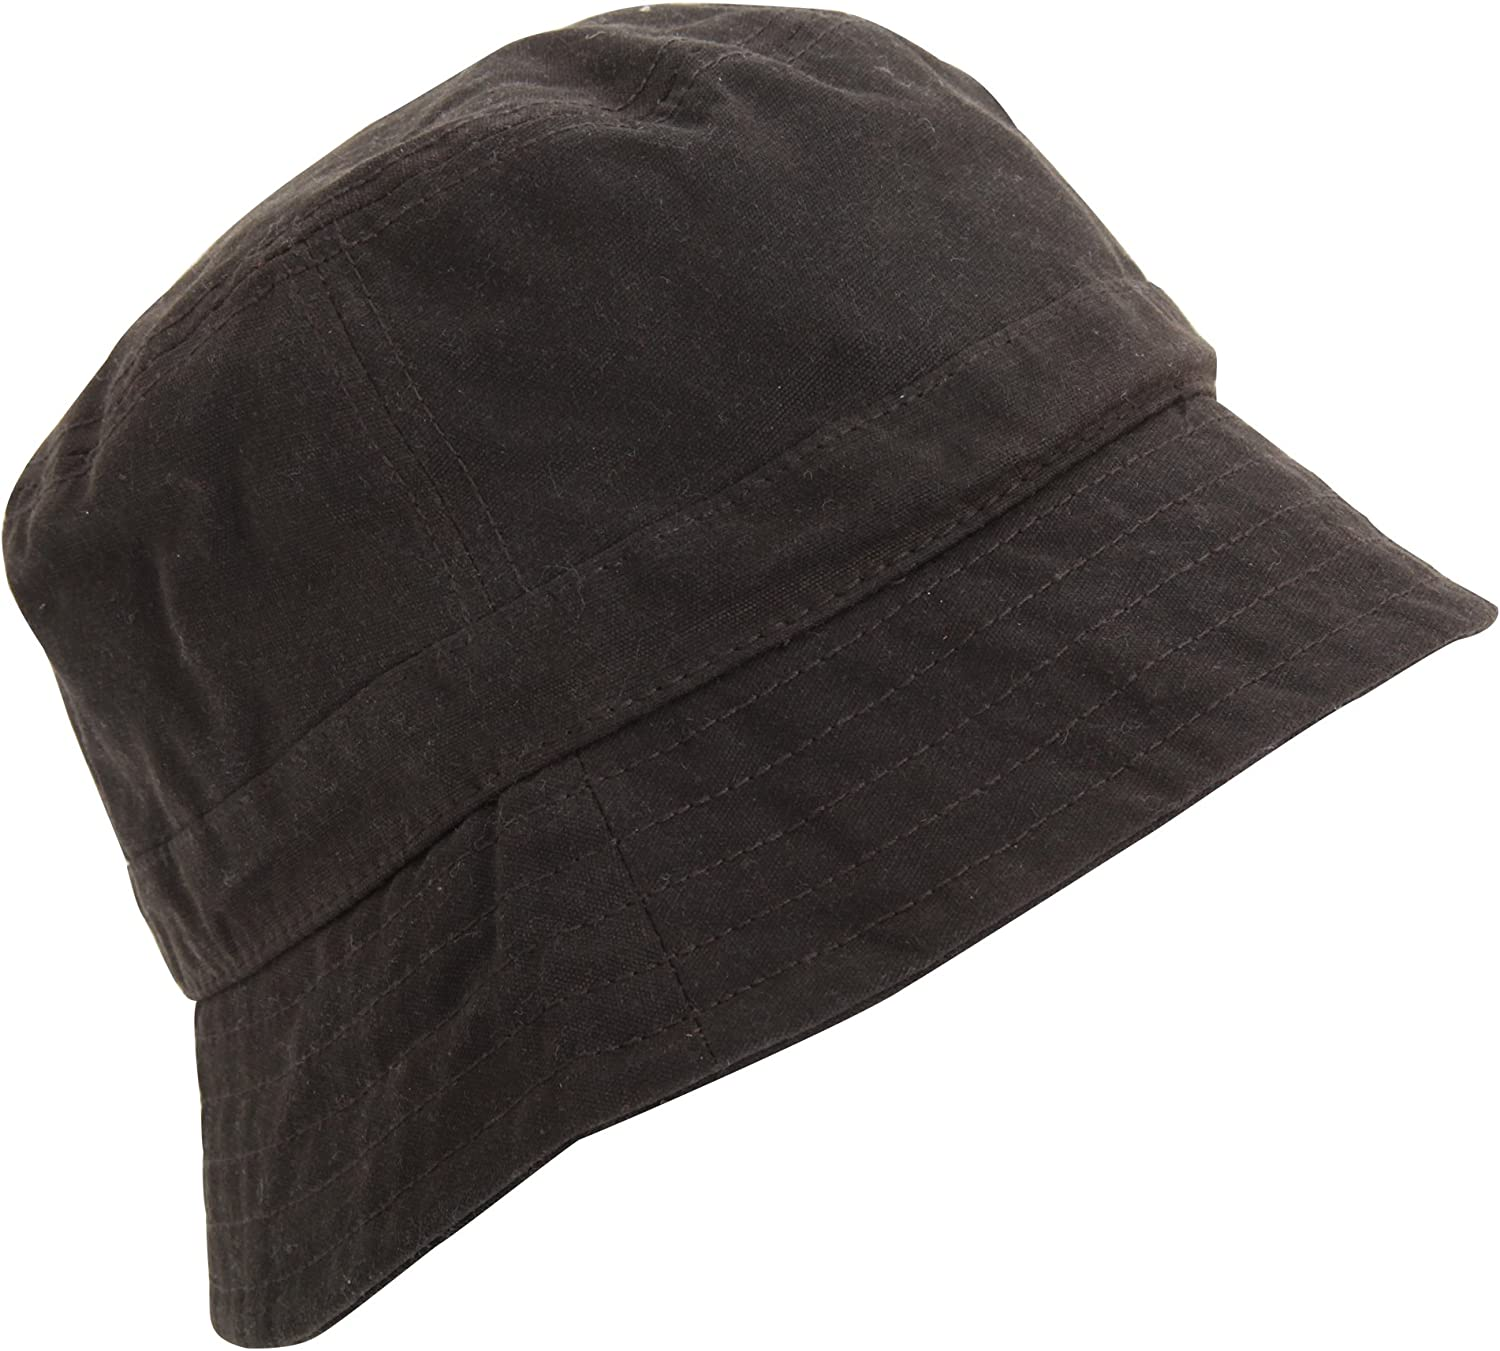 Beechfield Mens Waxed Water Resistant Bucket Hat